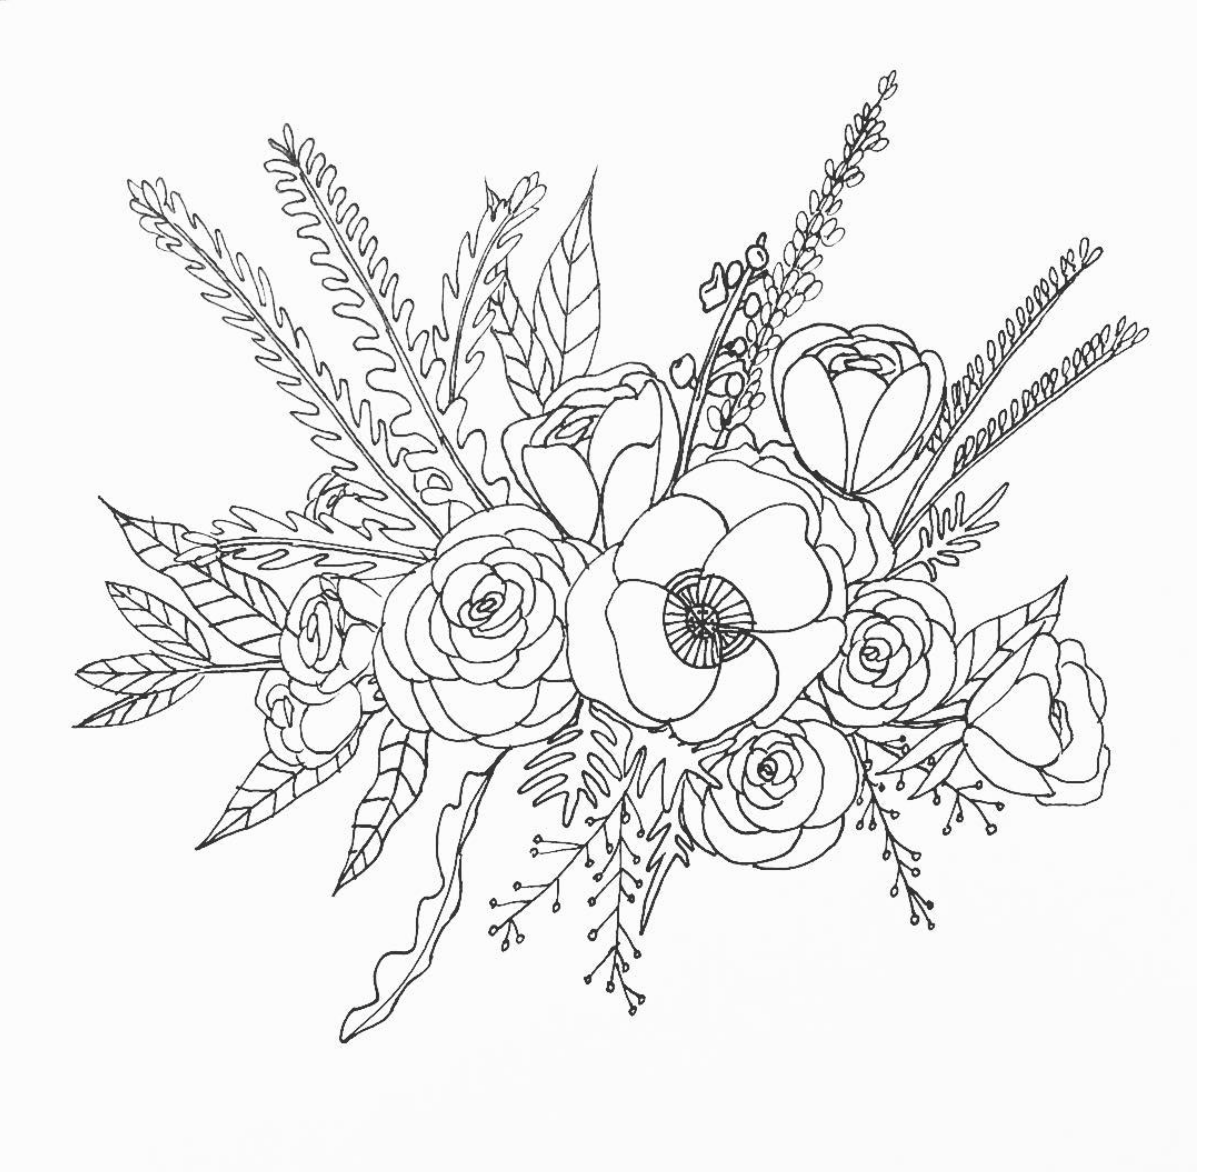 Flower In Line Drawing : Line drawing flower illustration floral bouquet art